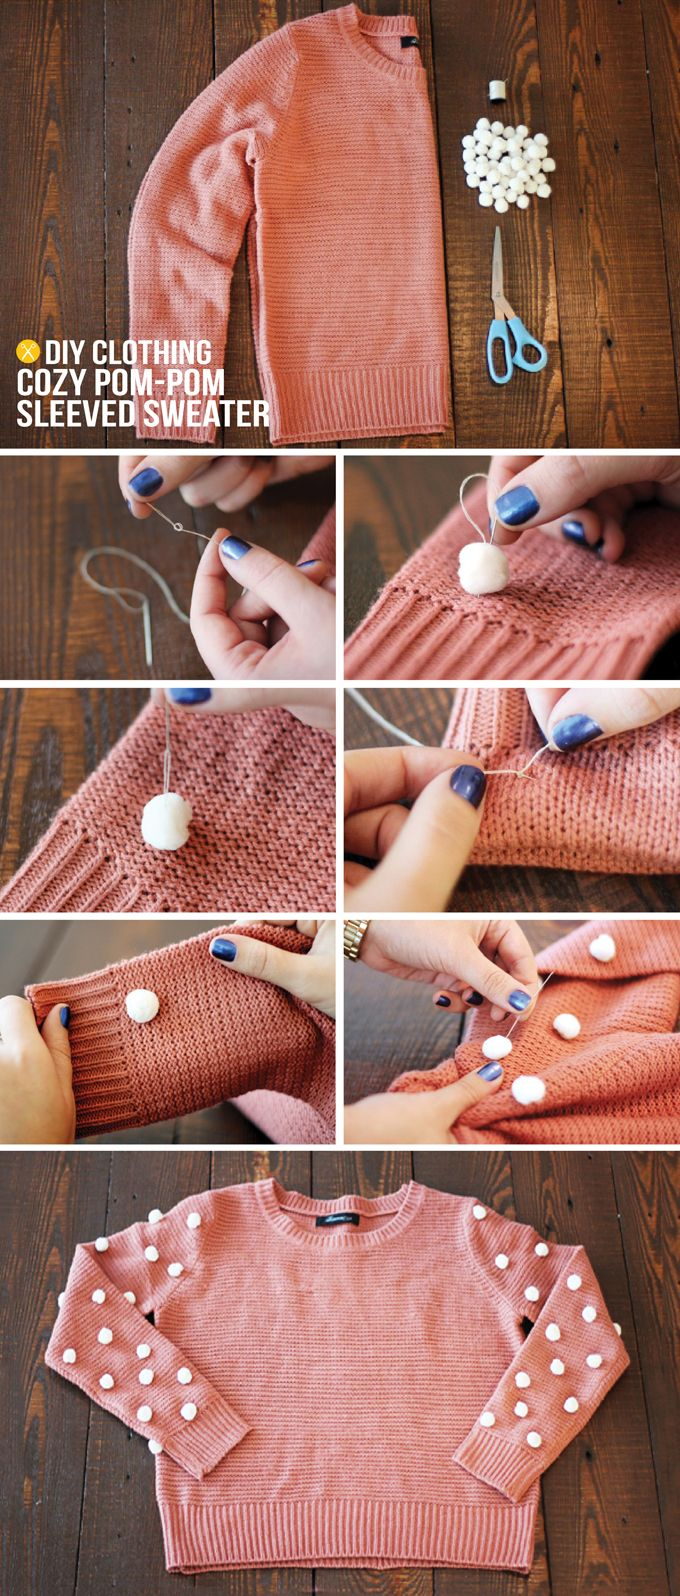 #DIY DIY Pom-Pom Sweater